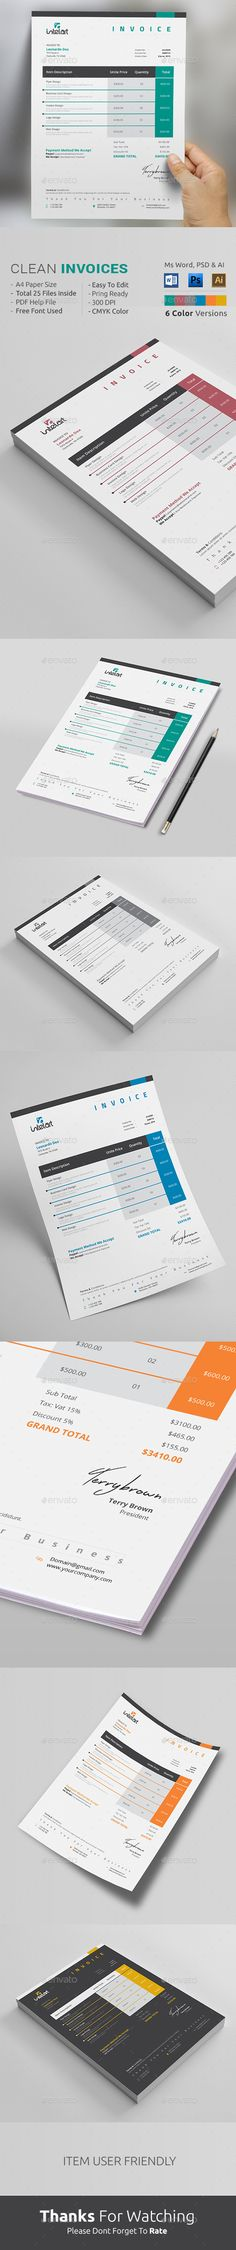 how to format a friendly letter%0A Invoice